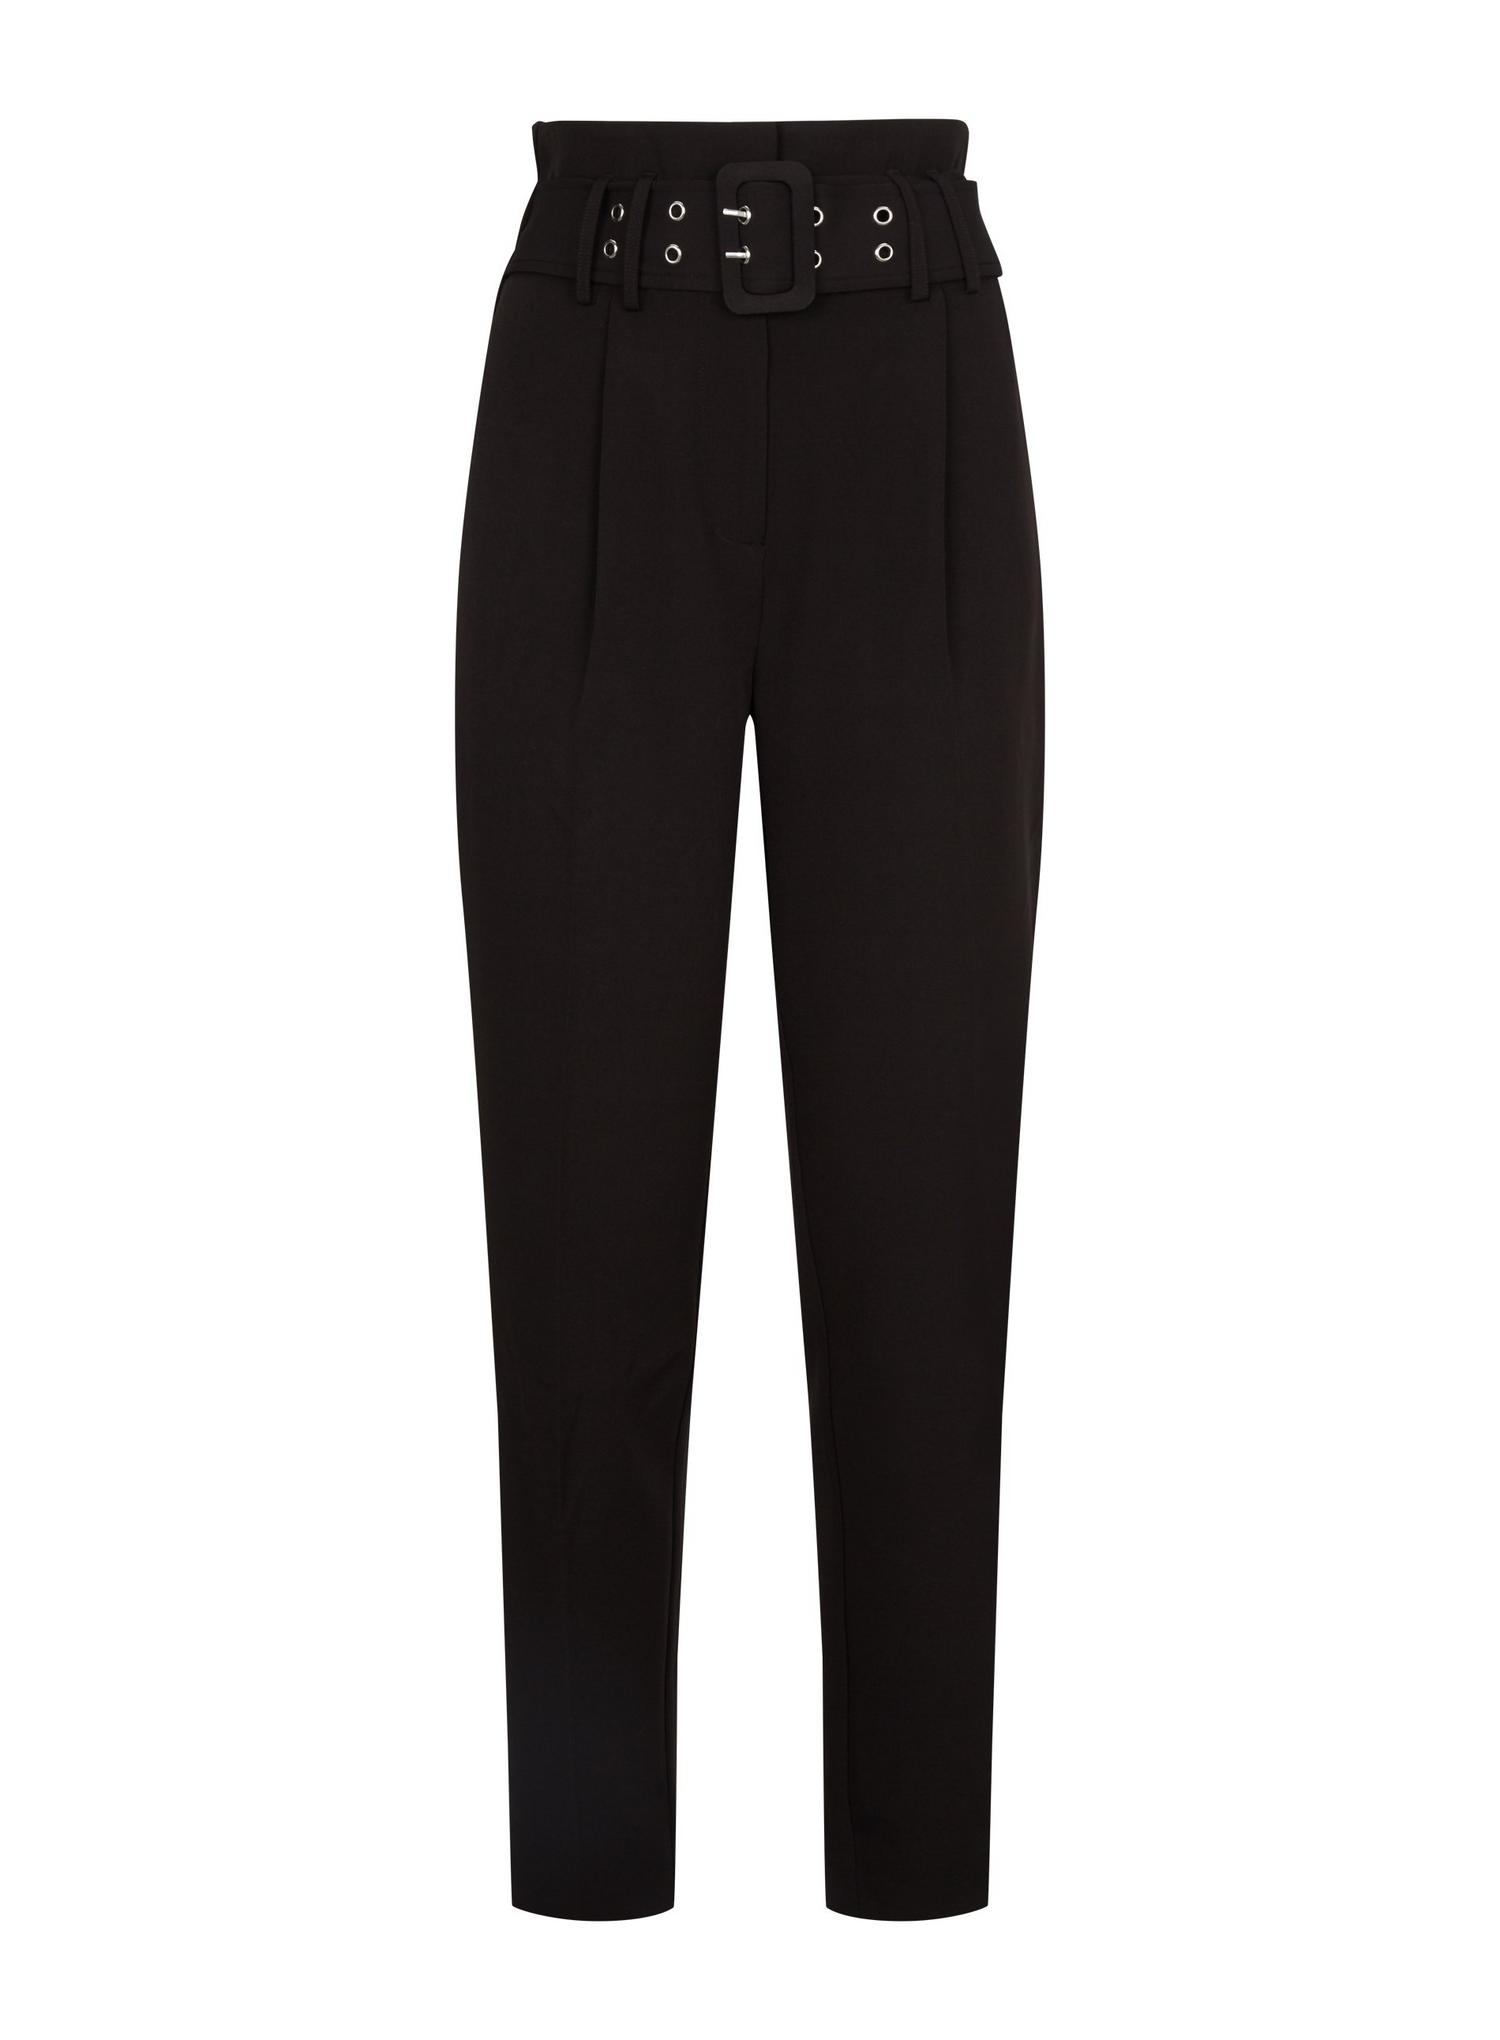 105 Tall Black Belted Trousers image number 2